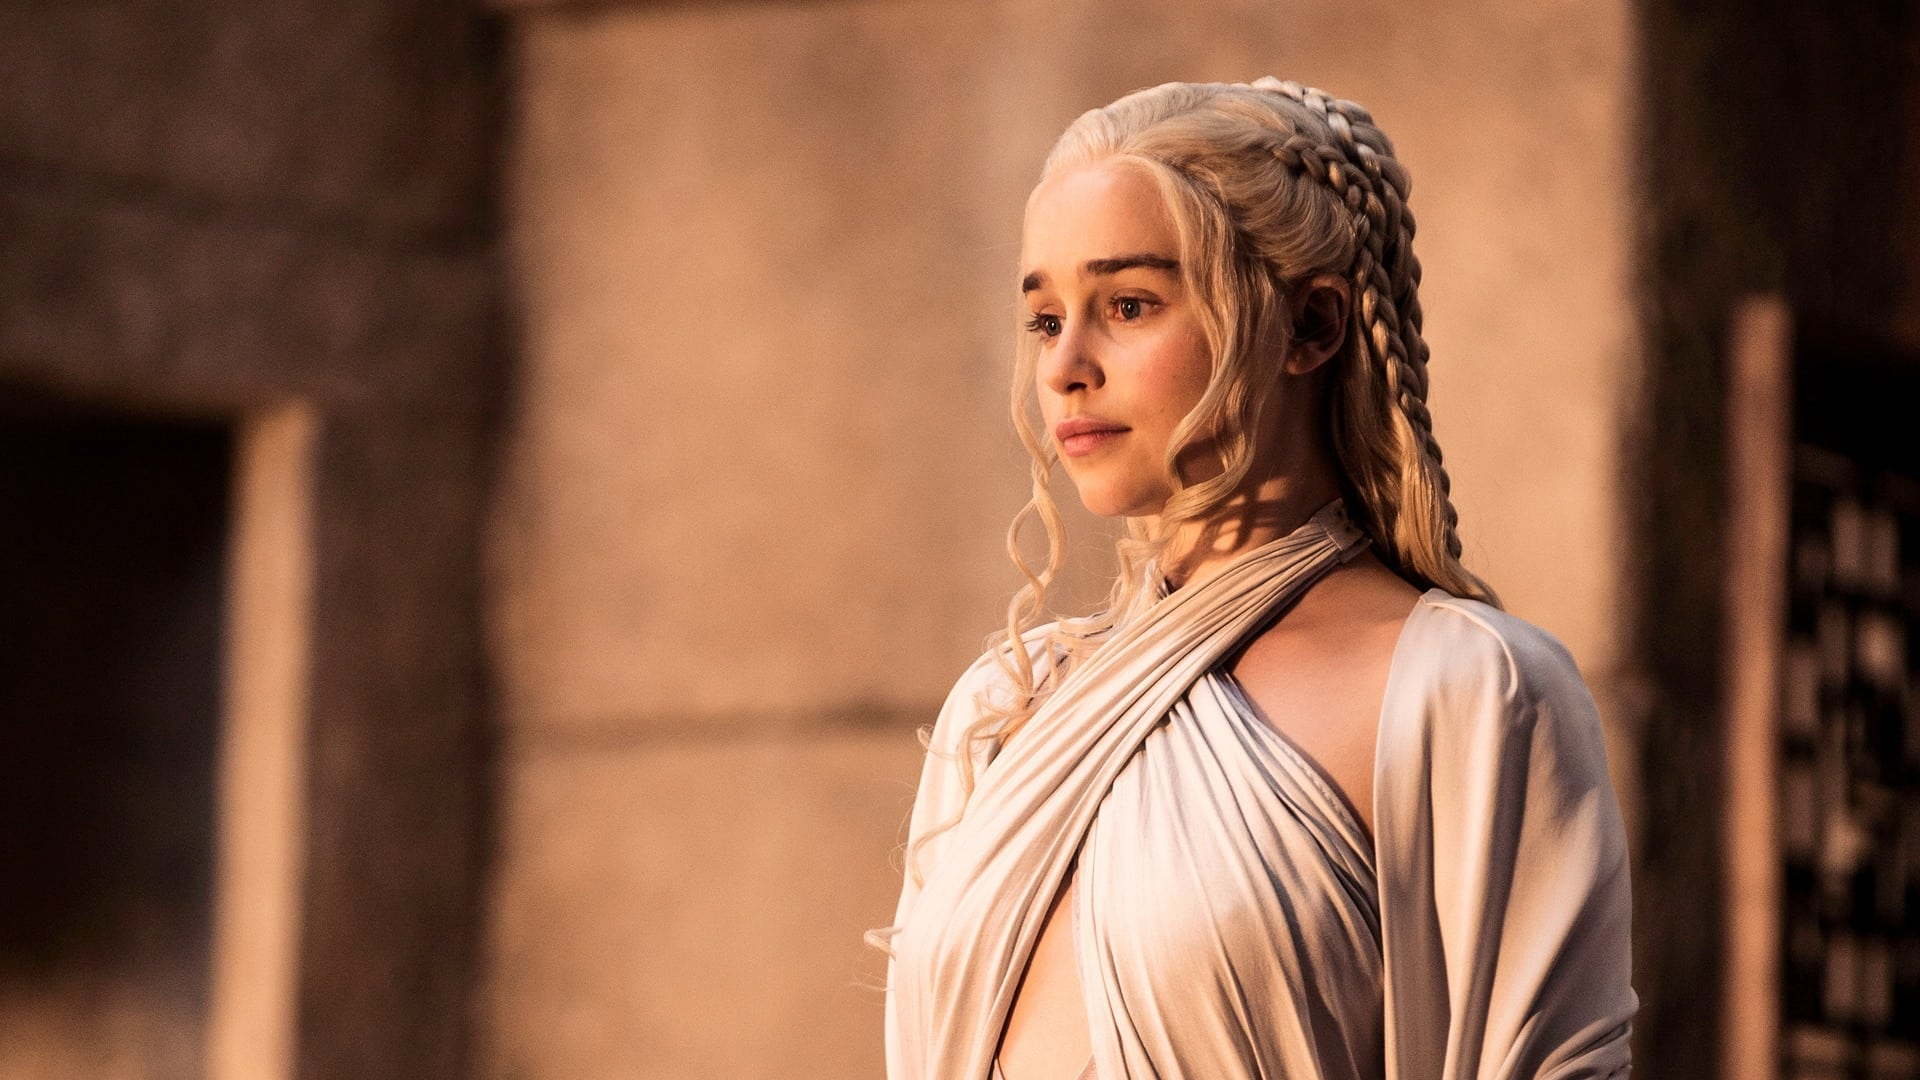 Life Lessons from the Game of Thrones 3